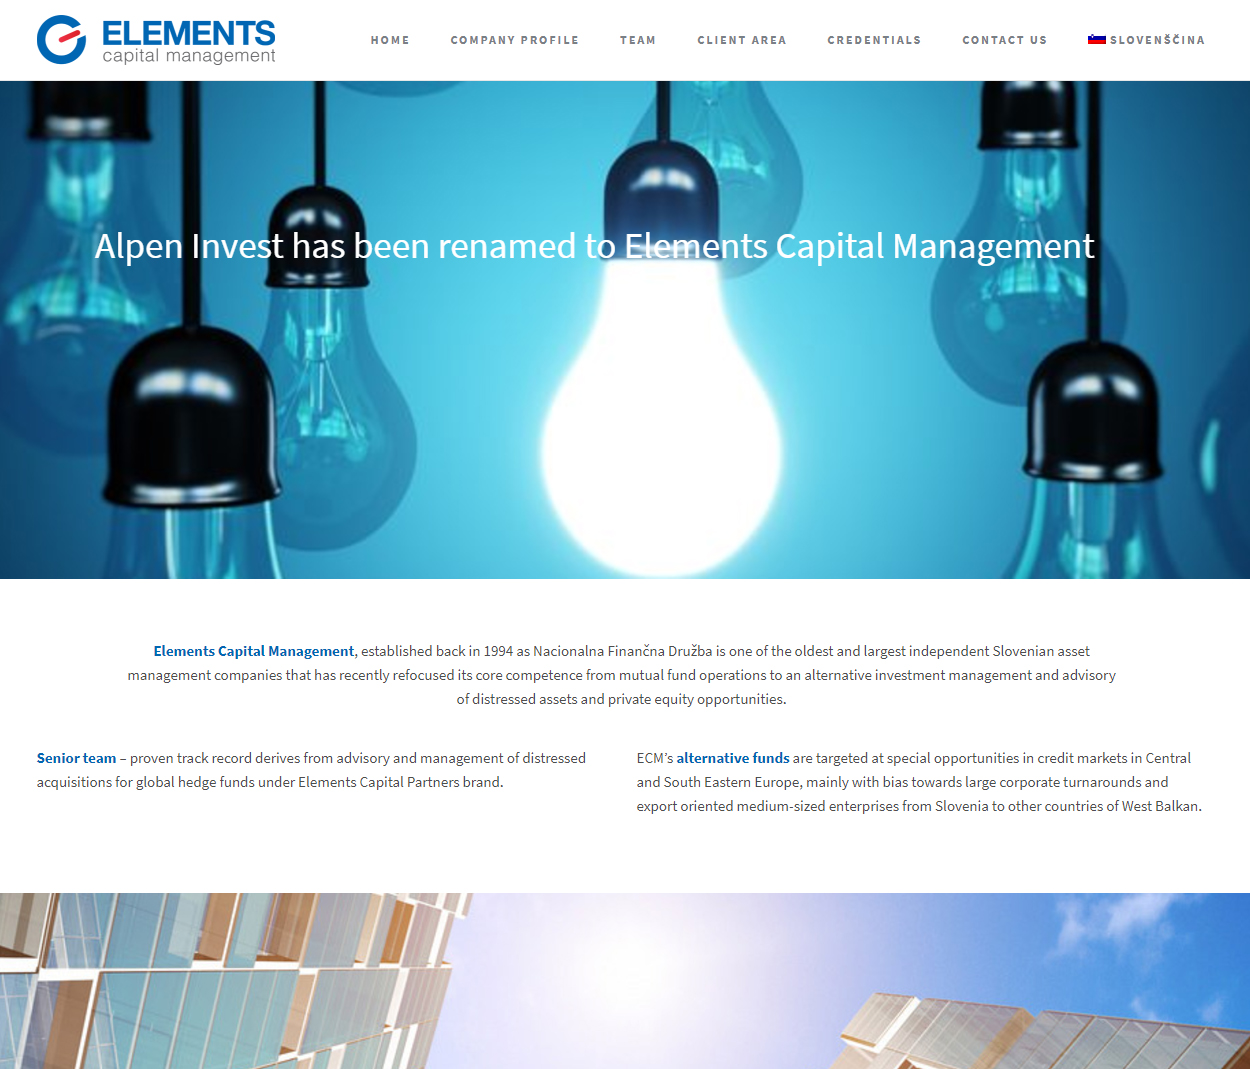 Elements Capital Management